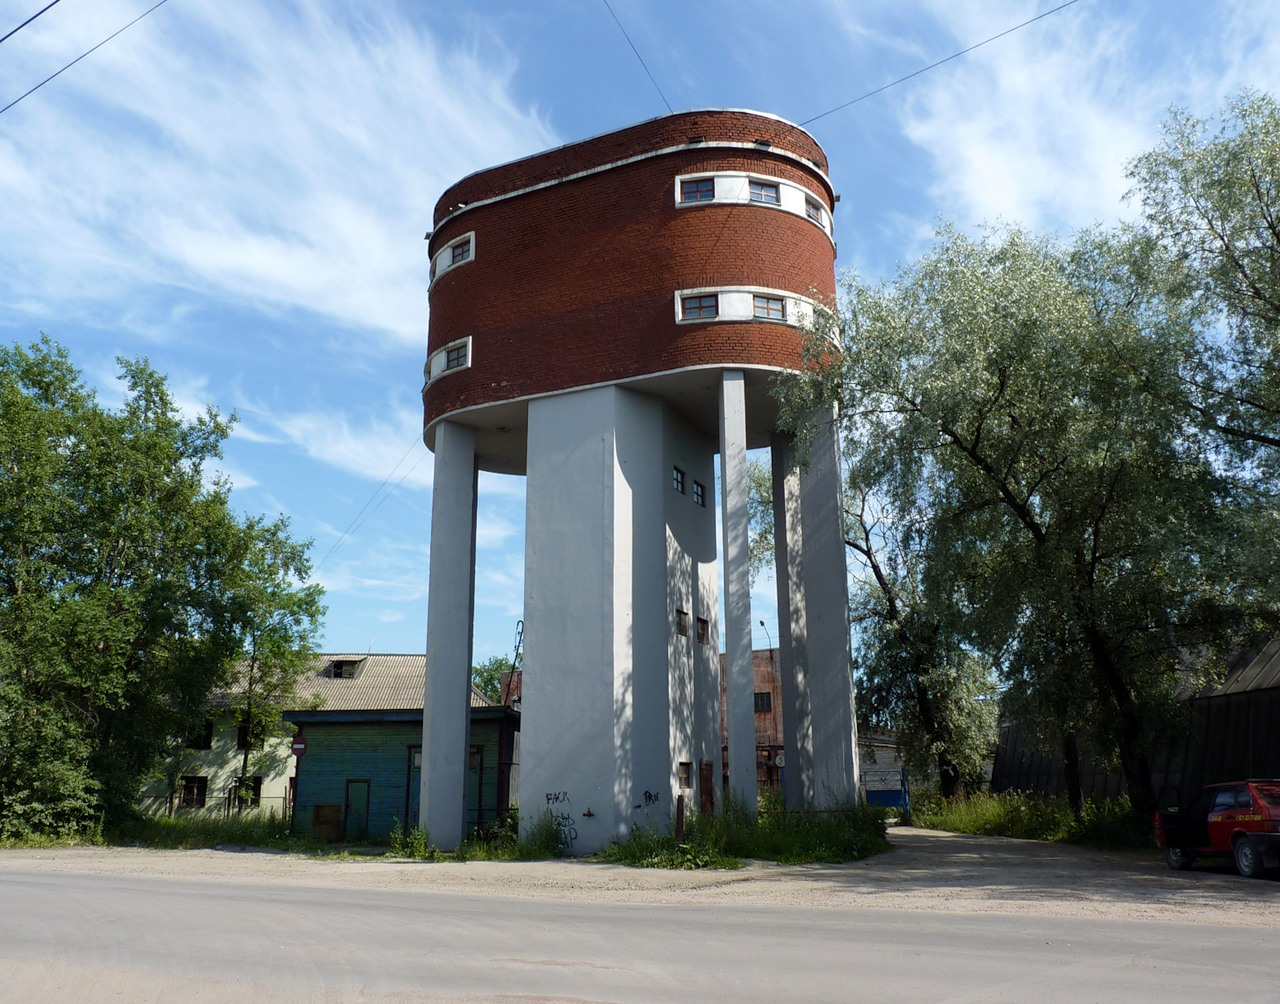 July 10, 2011. Sortavala. Water tower